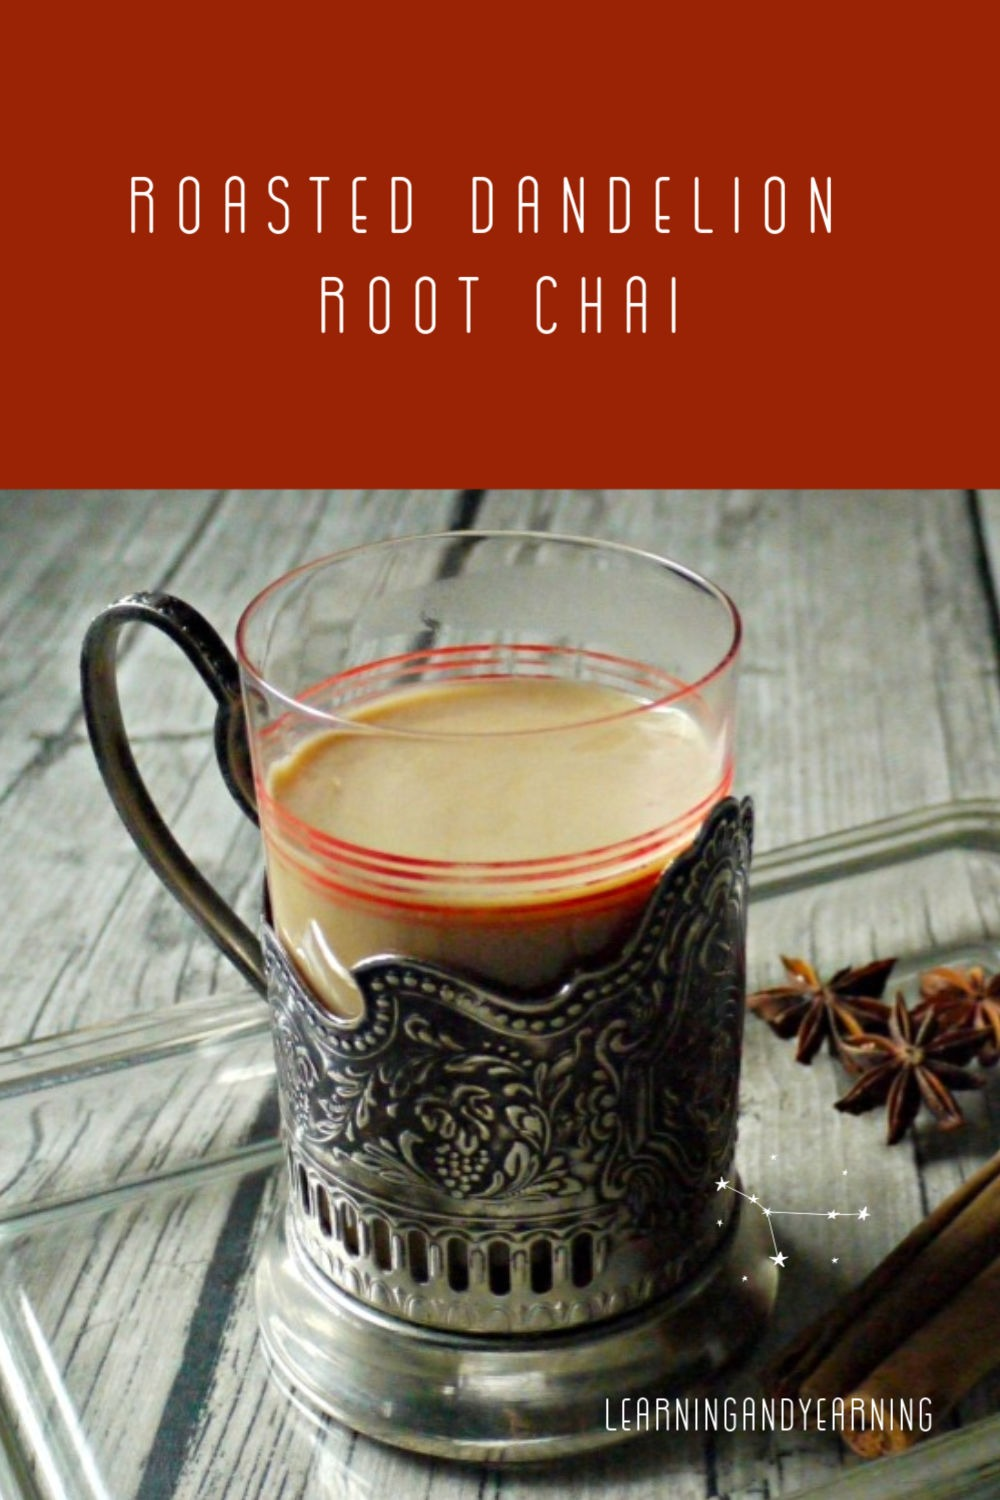 Roasted dandelion root chai!